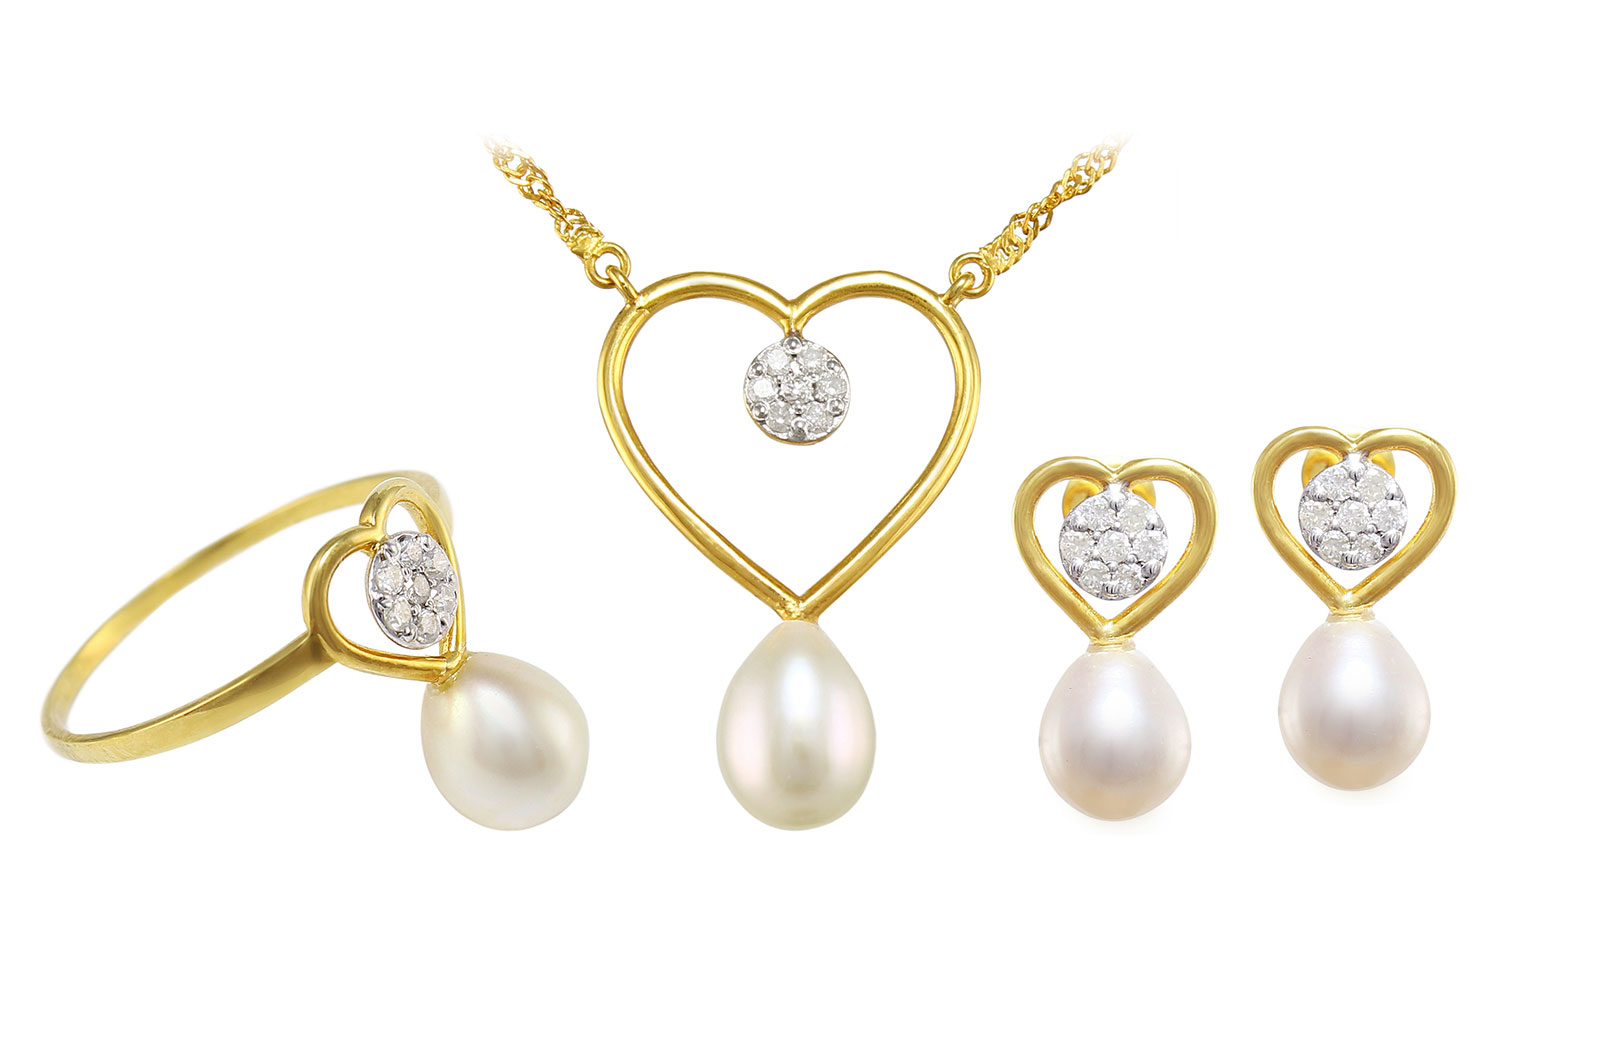 Vera Perla 18k Solid Gold Diamonds 7mm Pearls Solitaire Heart Earrings, Ring and Necklace Set